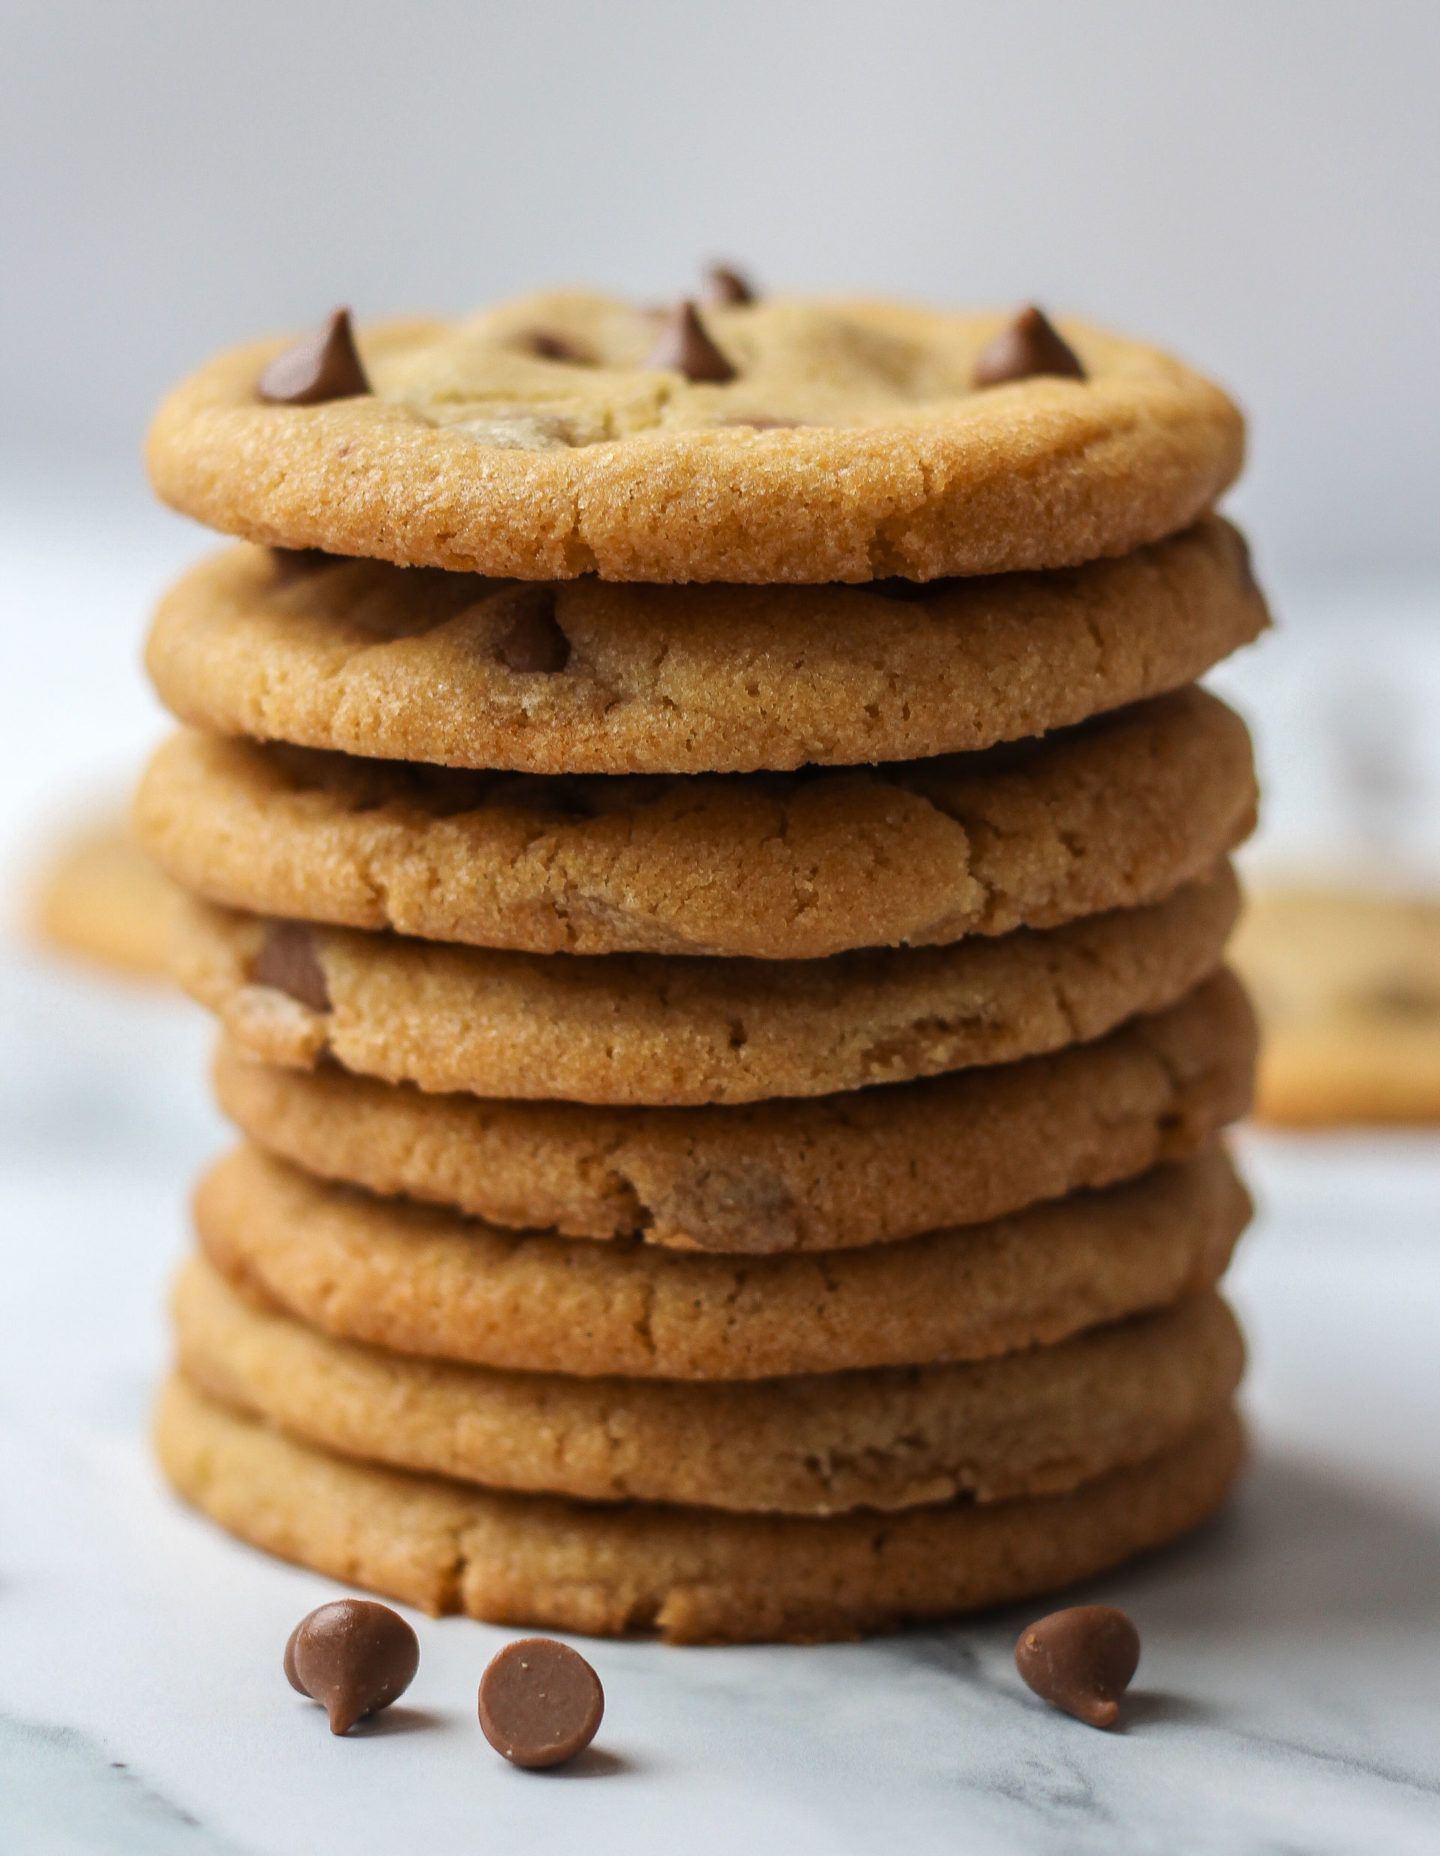 Tower of chewy chocolate chip cookies